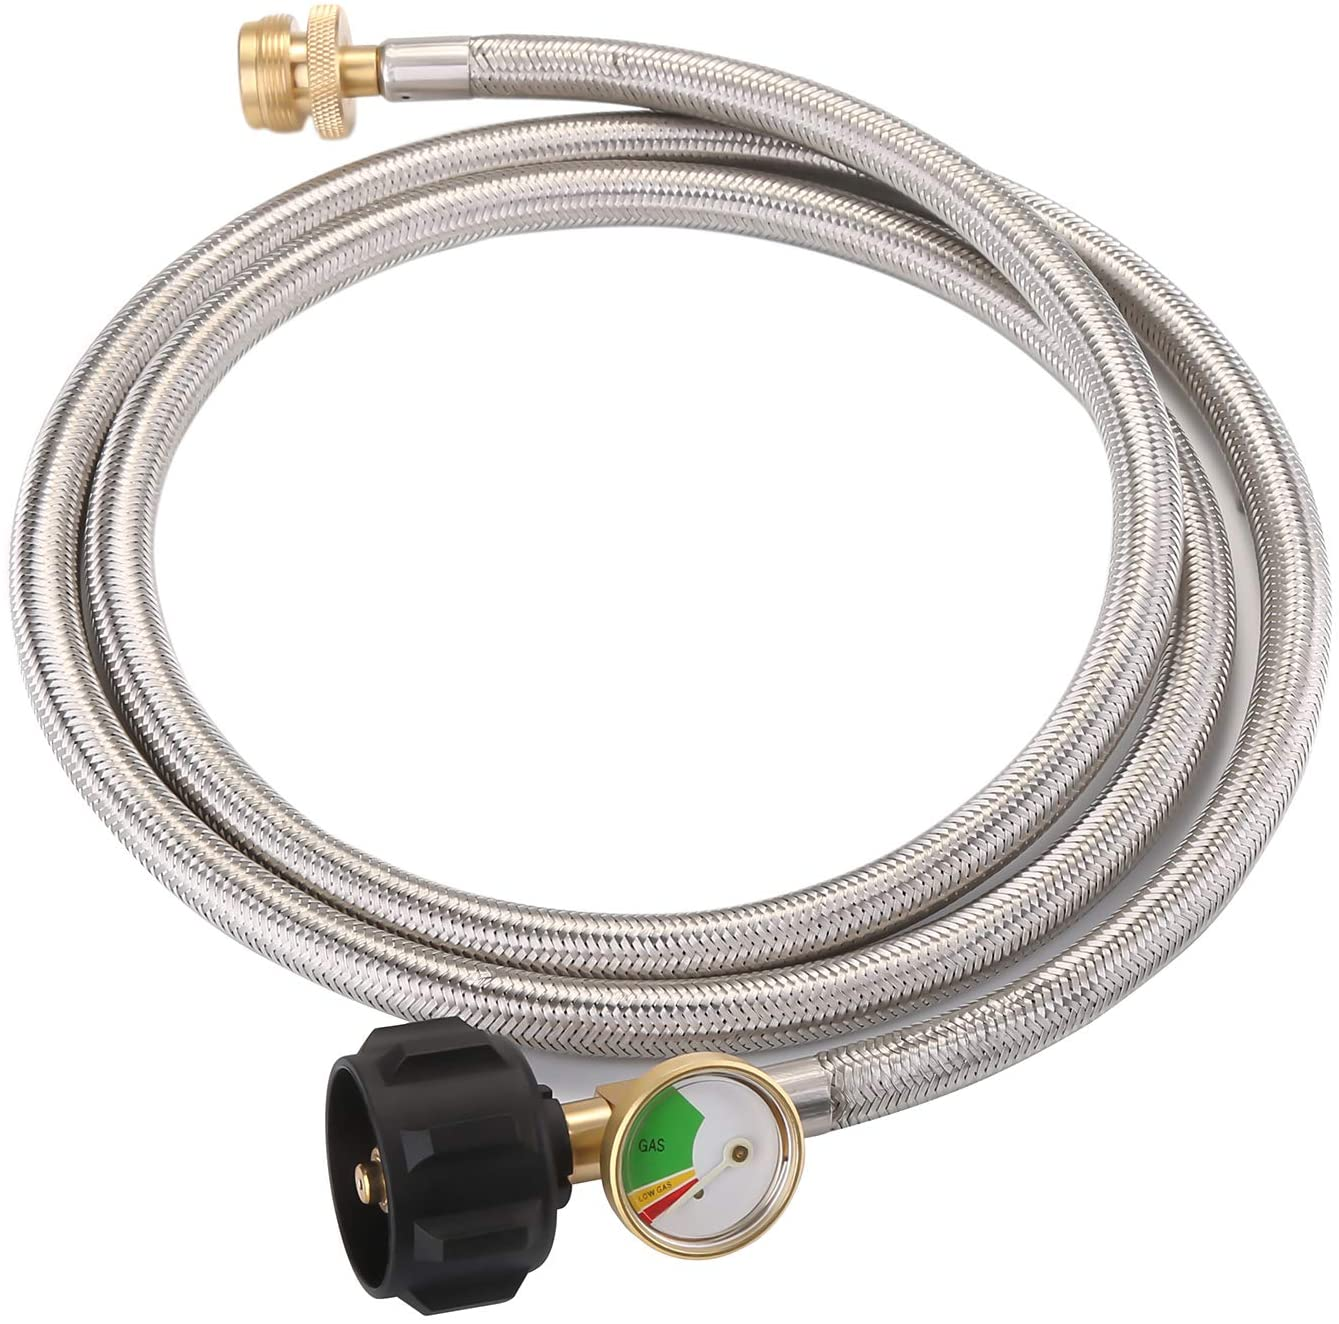 WADEO 6 FT Stainless Steel Braided Propane Adapter Hose with Propane Tank Gauge, 1 lb to 20 lb Converter for QCC1 / Type1 LP Tank to 1 LB Propane Stove, Tabletop Grill and More 1lb Portable Appliance